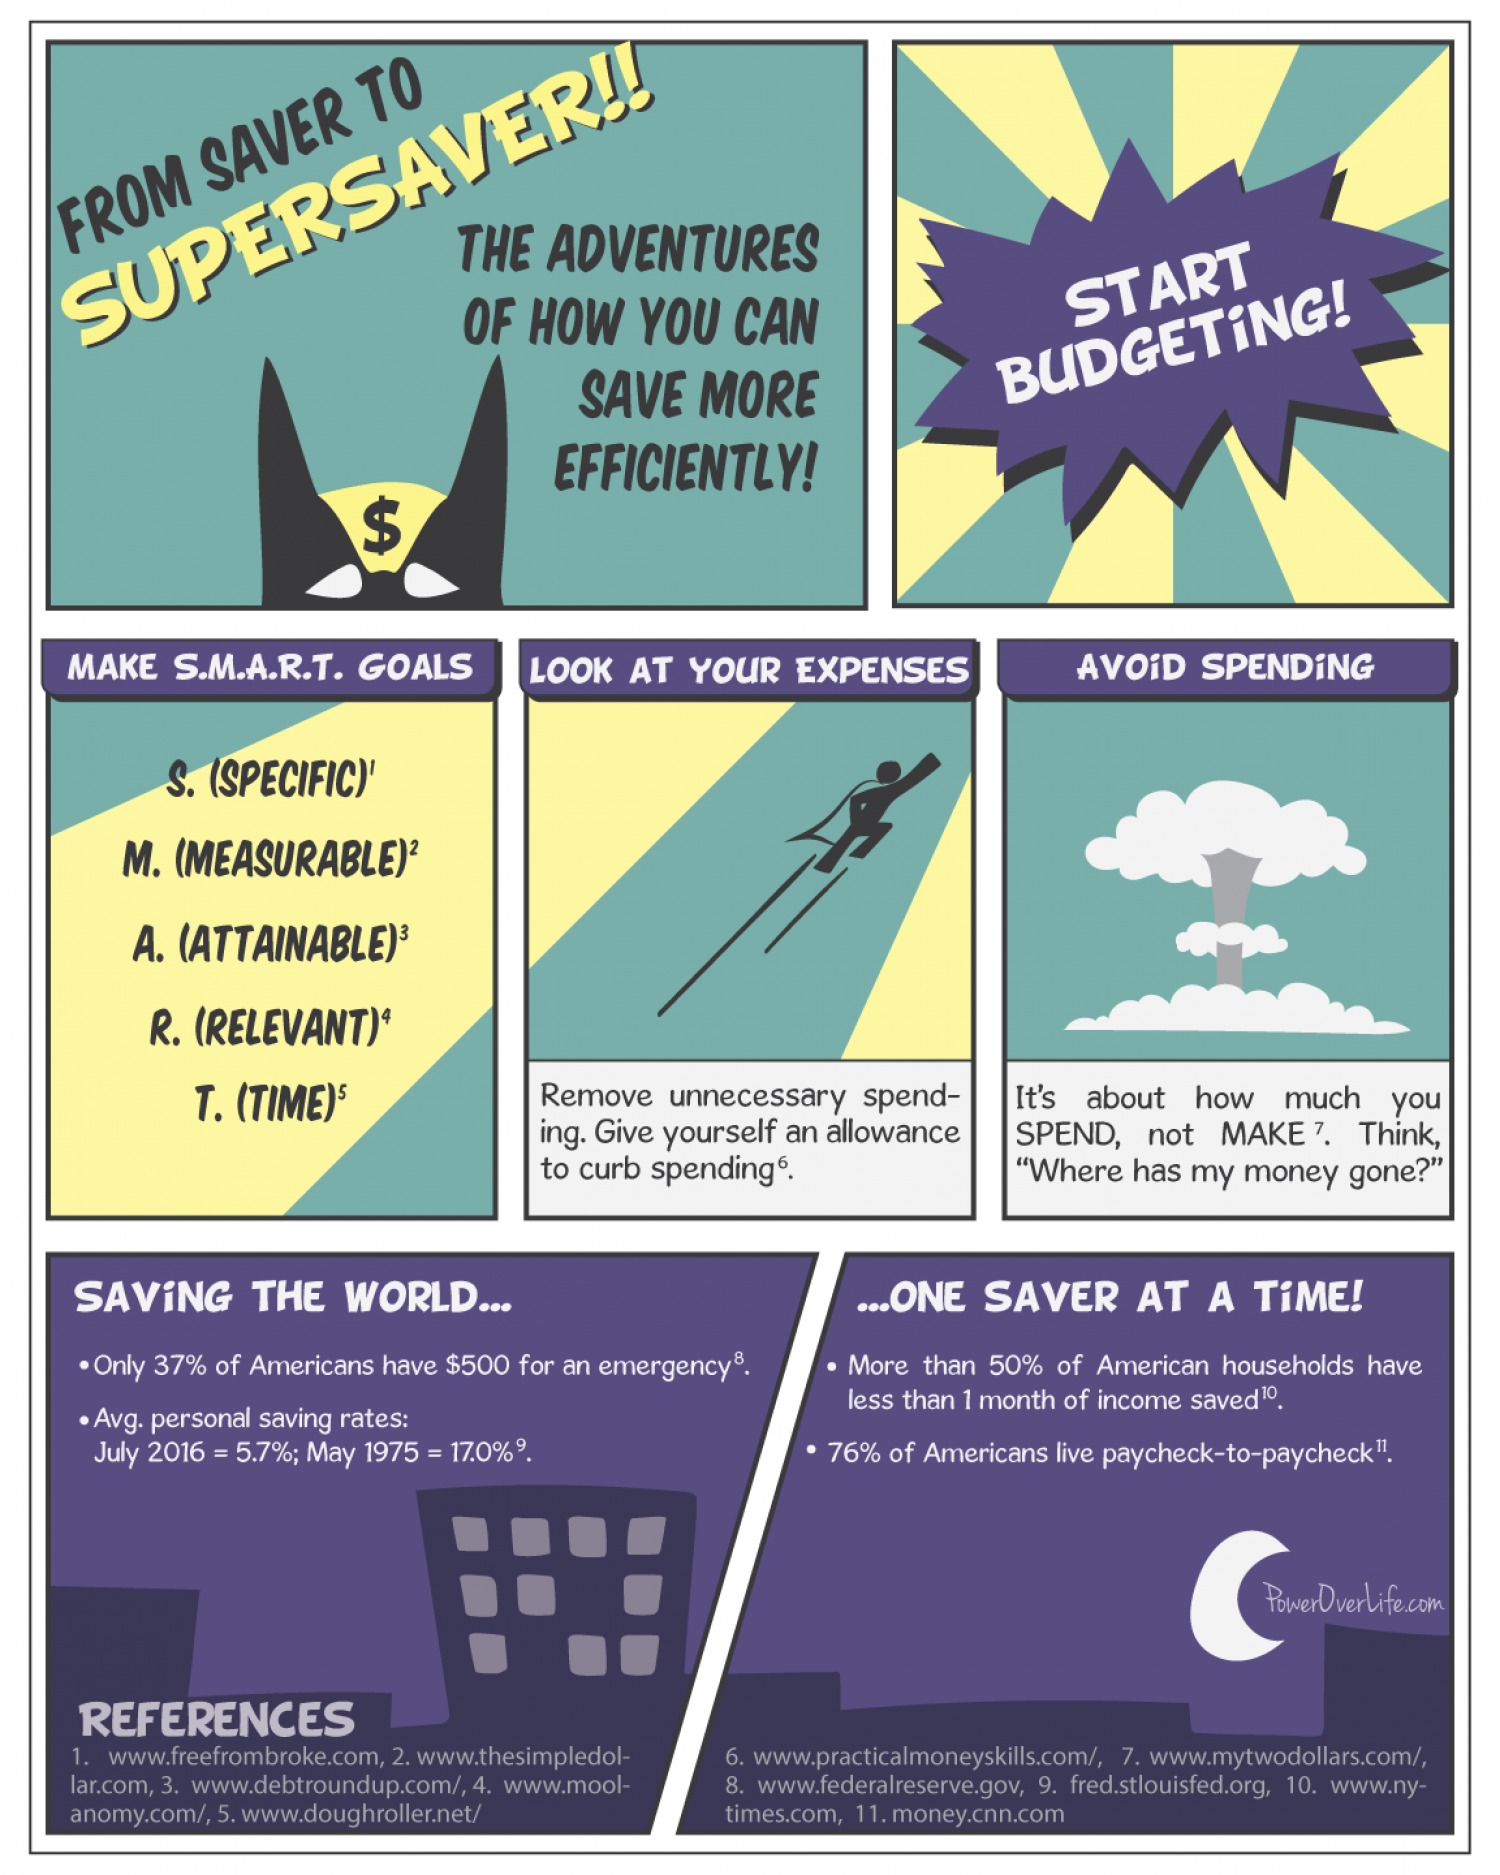 Graduate From Being a Saver and Become a SUPERSAVER Infographic